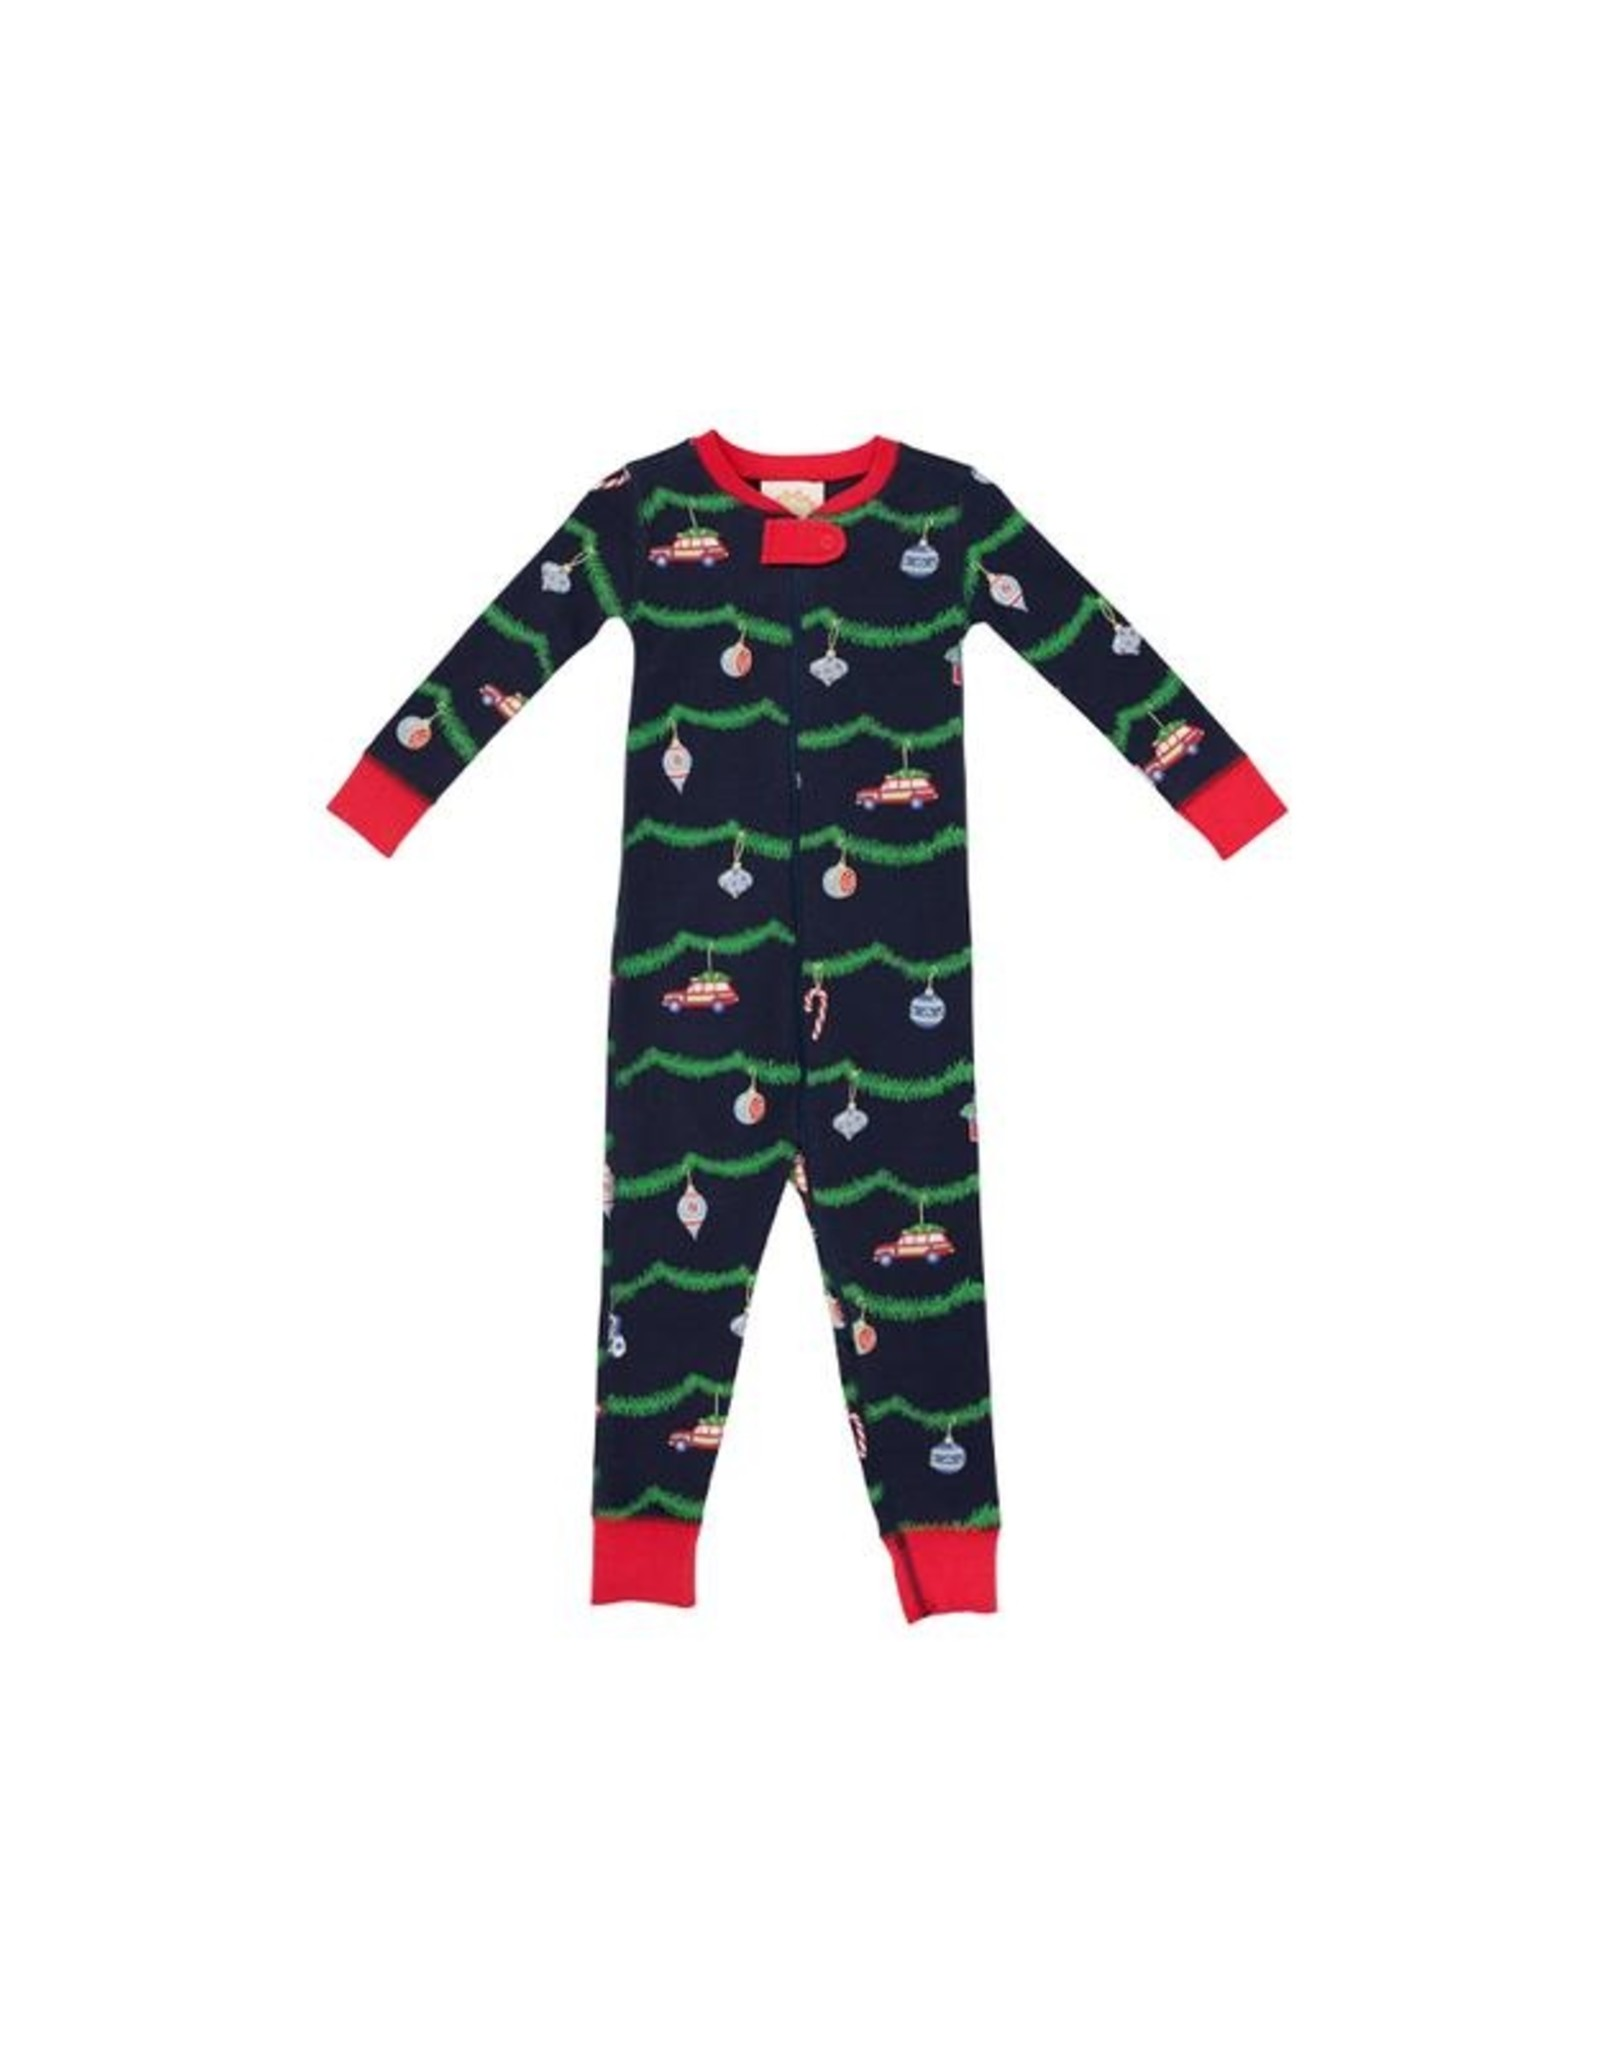 The Beaufort Bonnet Company Knoxs Night Night Non-Footed Deck the Halls 2t